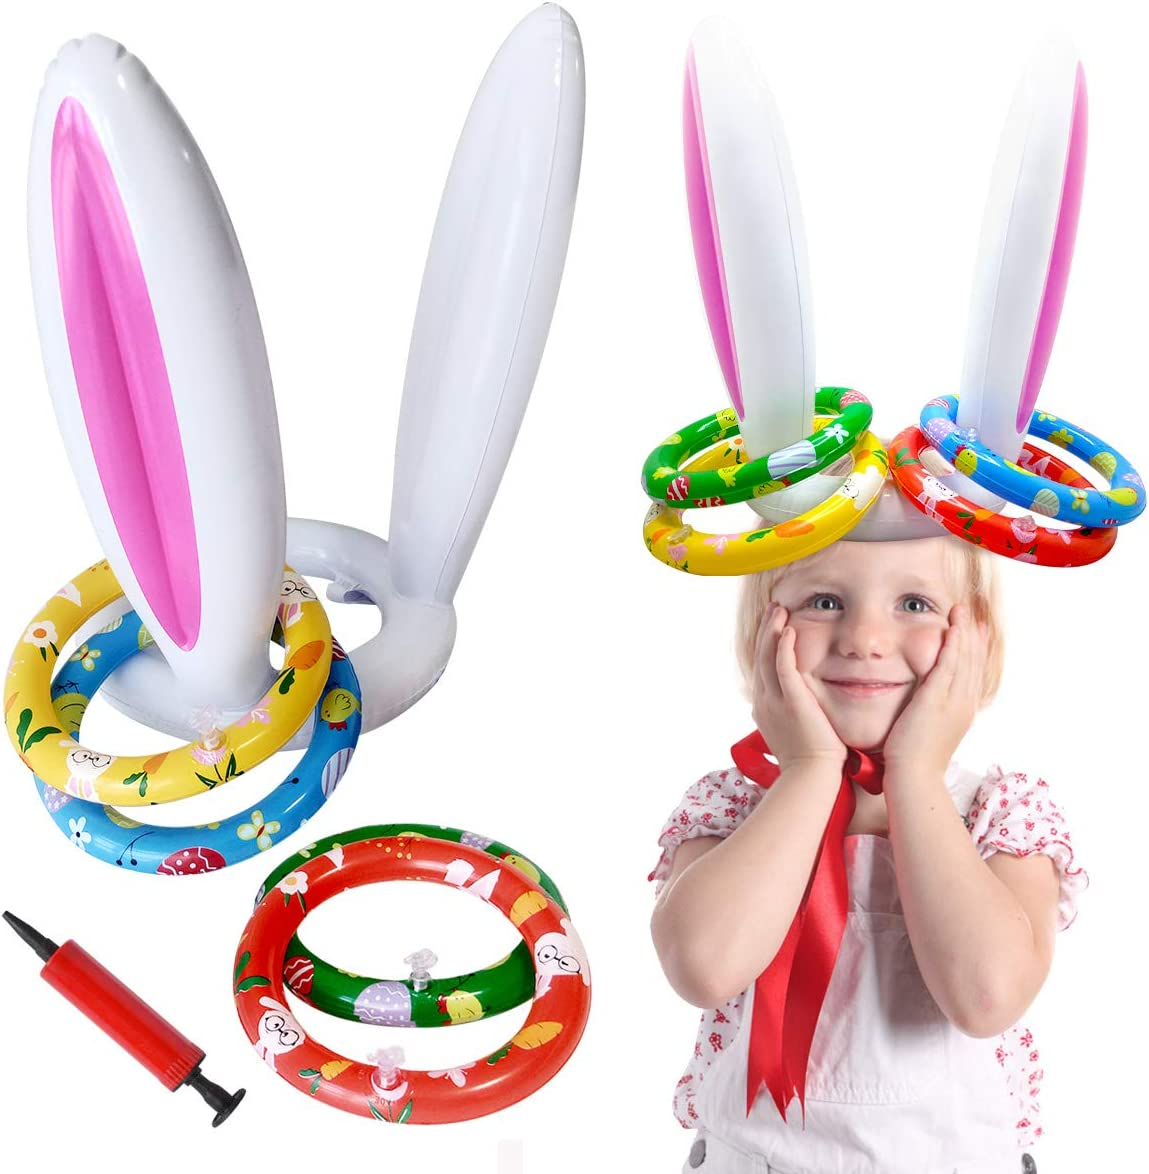 Hiwu 2 Pack Easter Inflatable Bunny Ki Max 64% OFF Game for Toss New popularity Ring